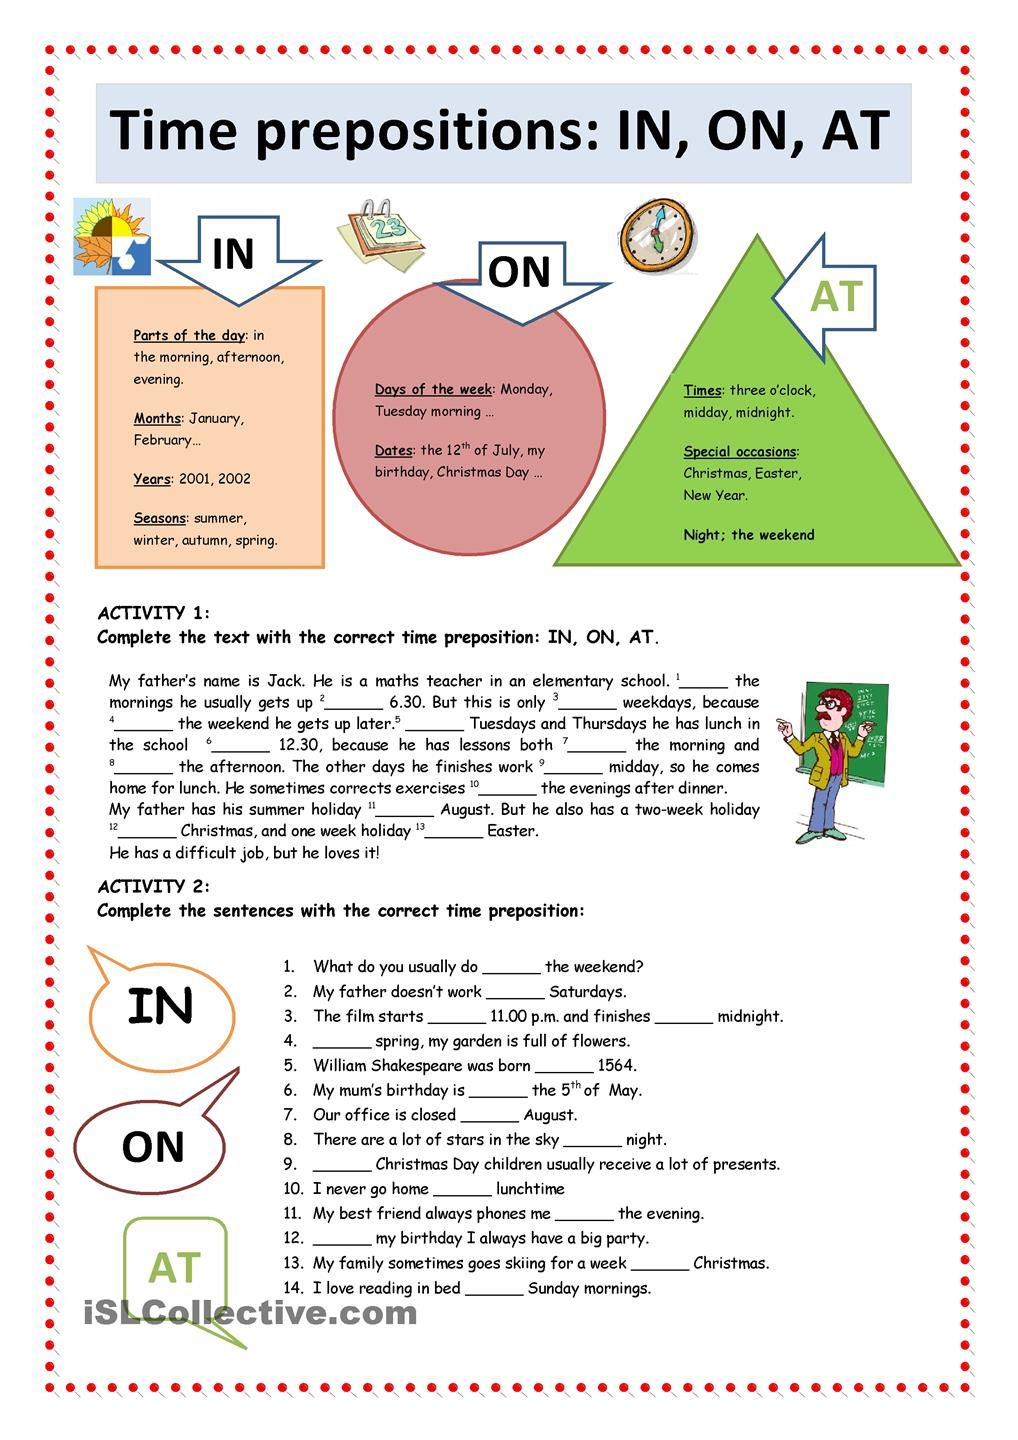 Time Prepositions IN, ON, AT English grammar, English